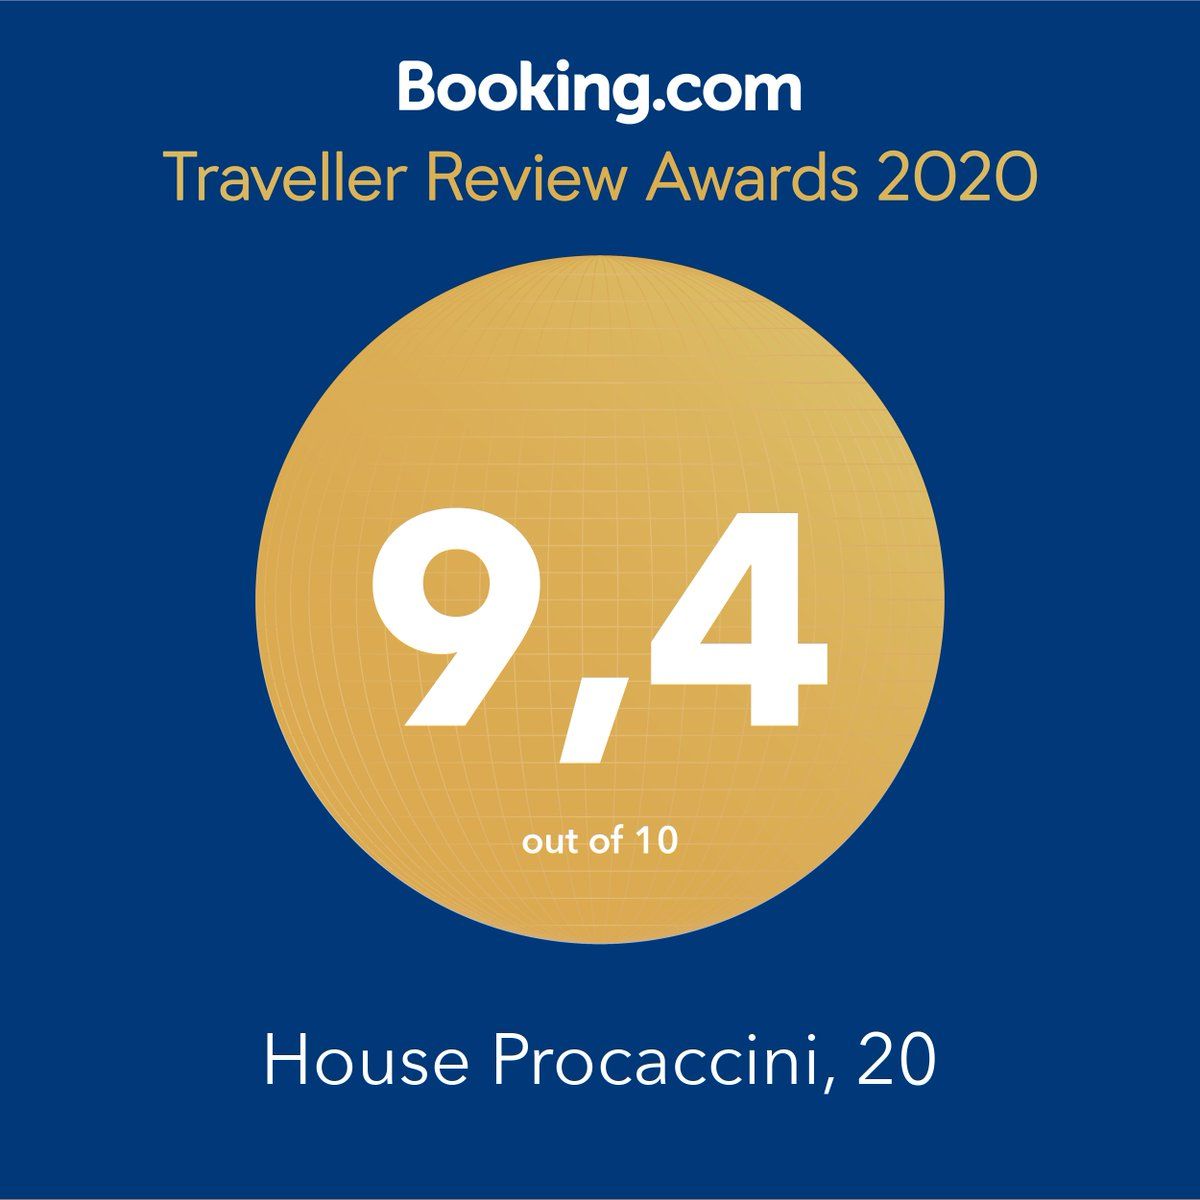 Traveller Review Awards 2020 https://t.co/LDS0rMw0rf